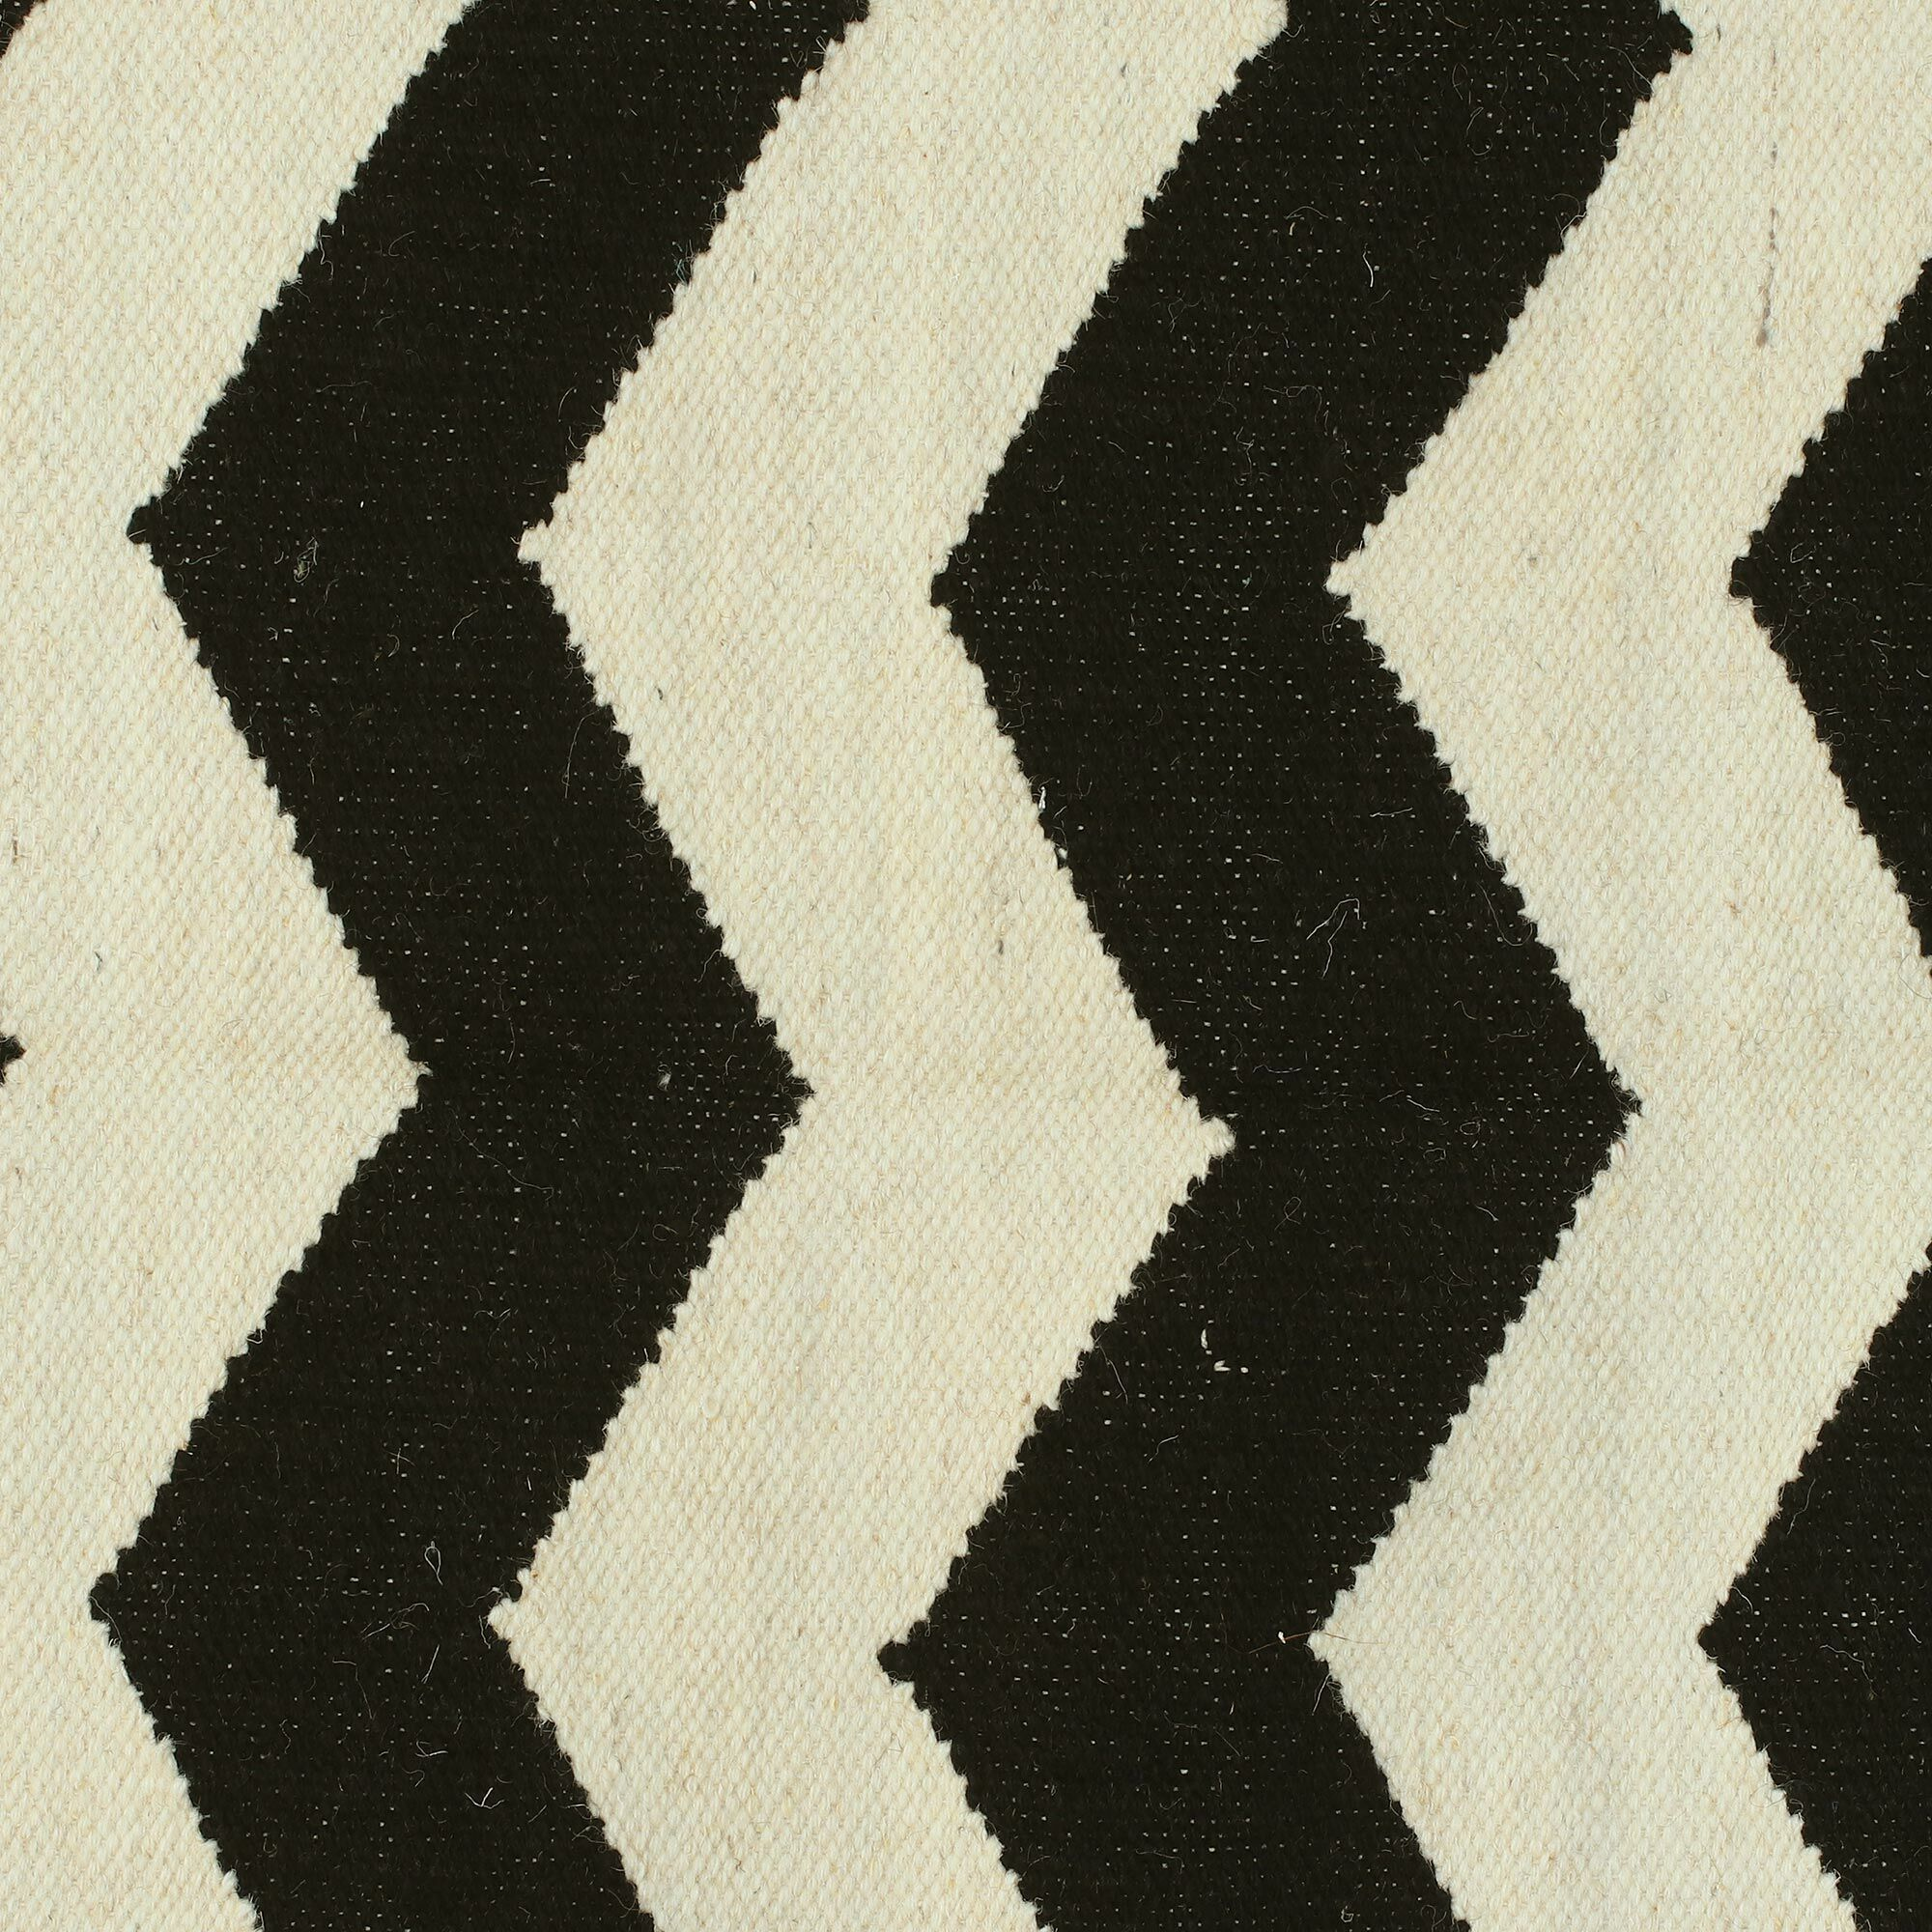 Laguerre Zigzags Dhurrie Hand-Woven Wool Black/White Area Rug